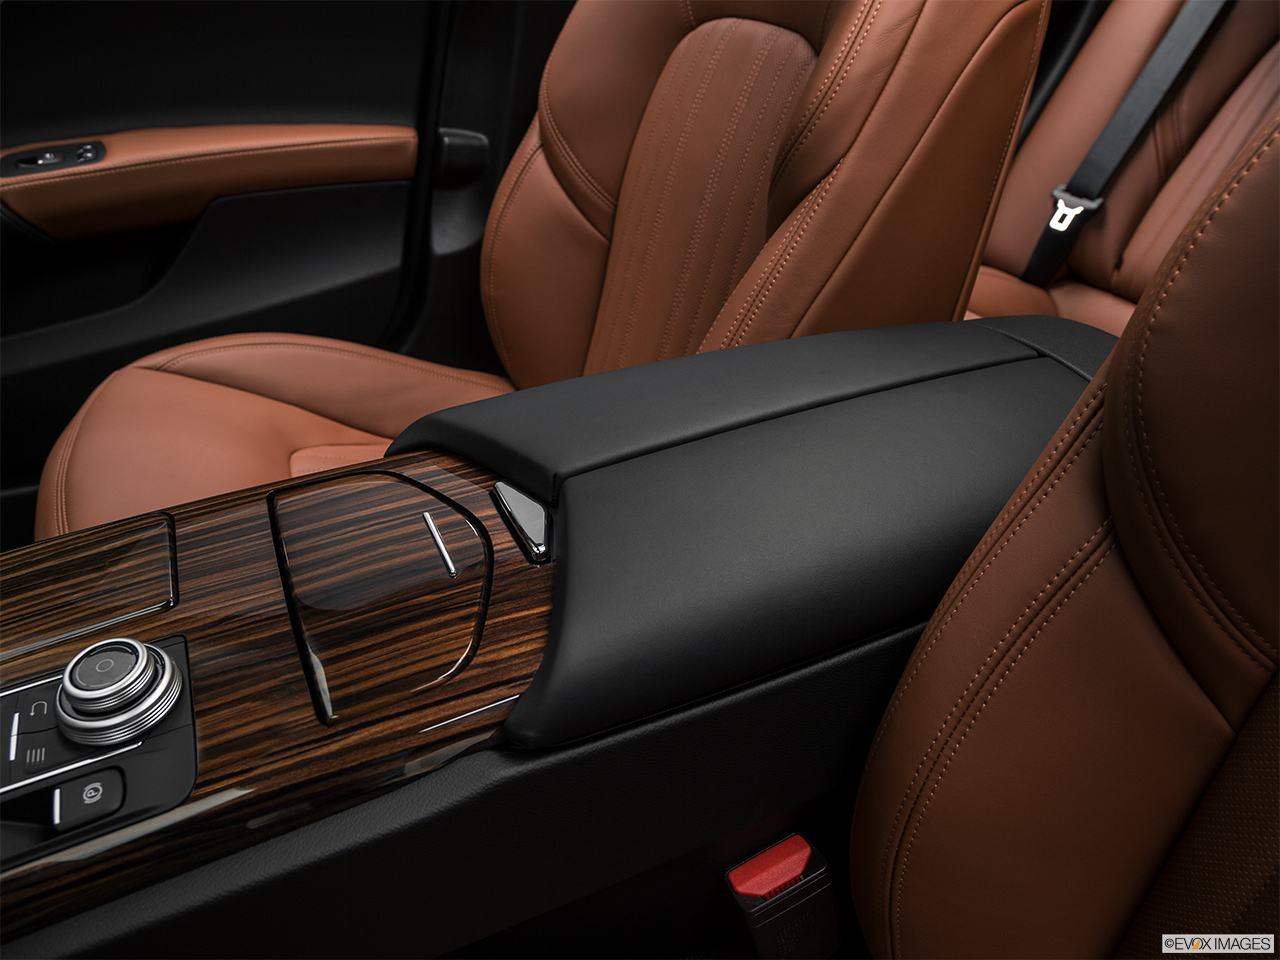 2018 Maserati Ghibli  S Granlusso Front center console with closed lid, from driver's side looking down